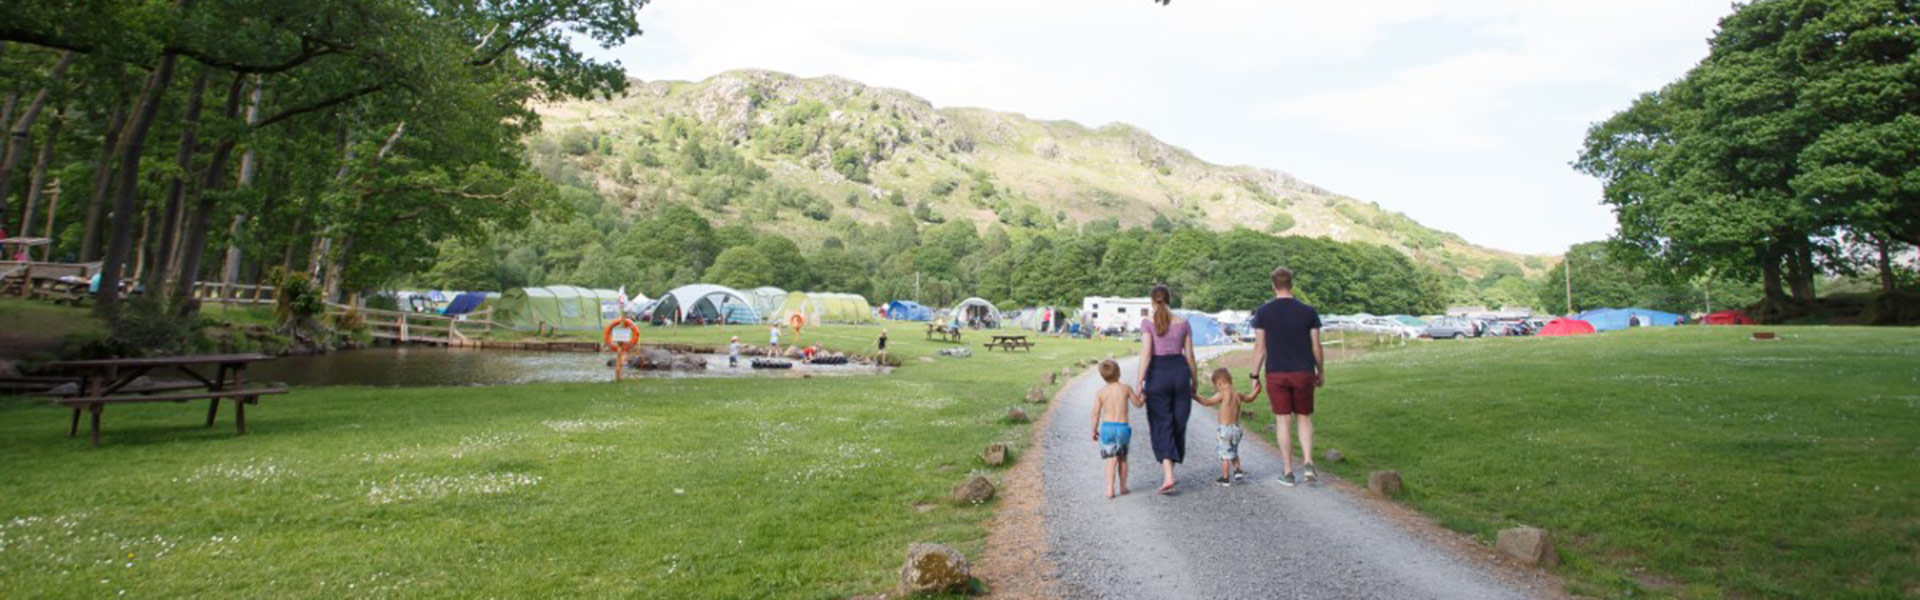 camping site lake district